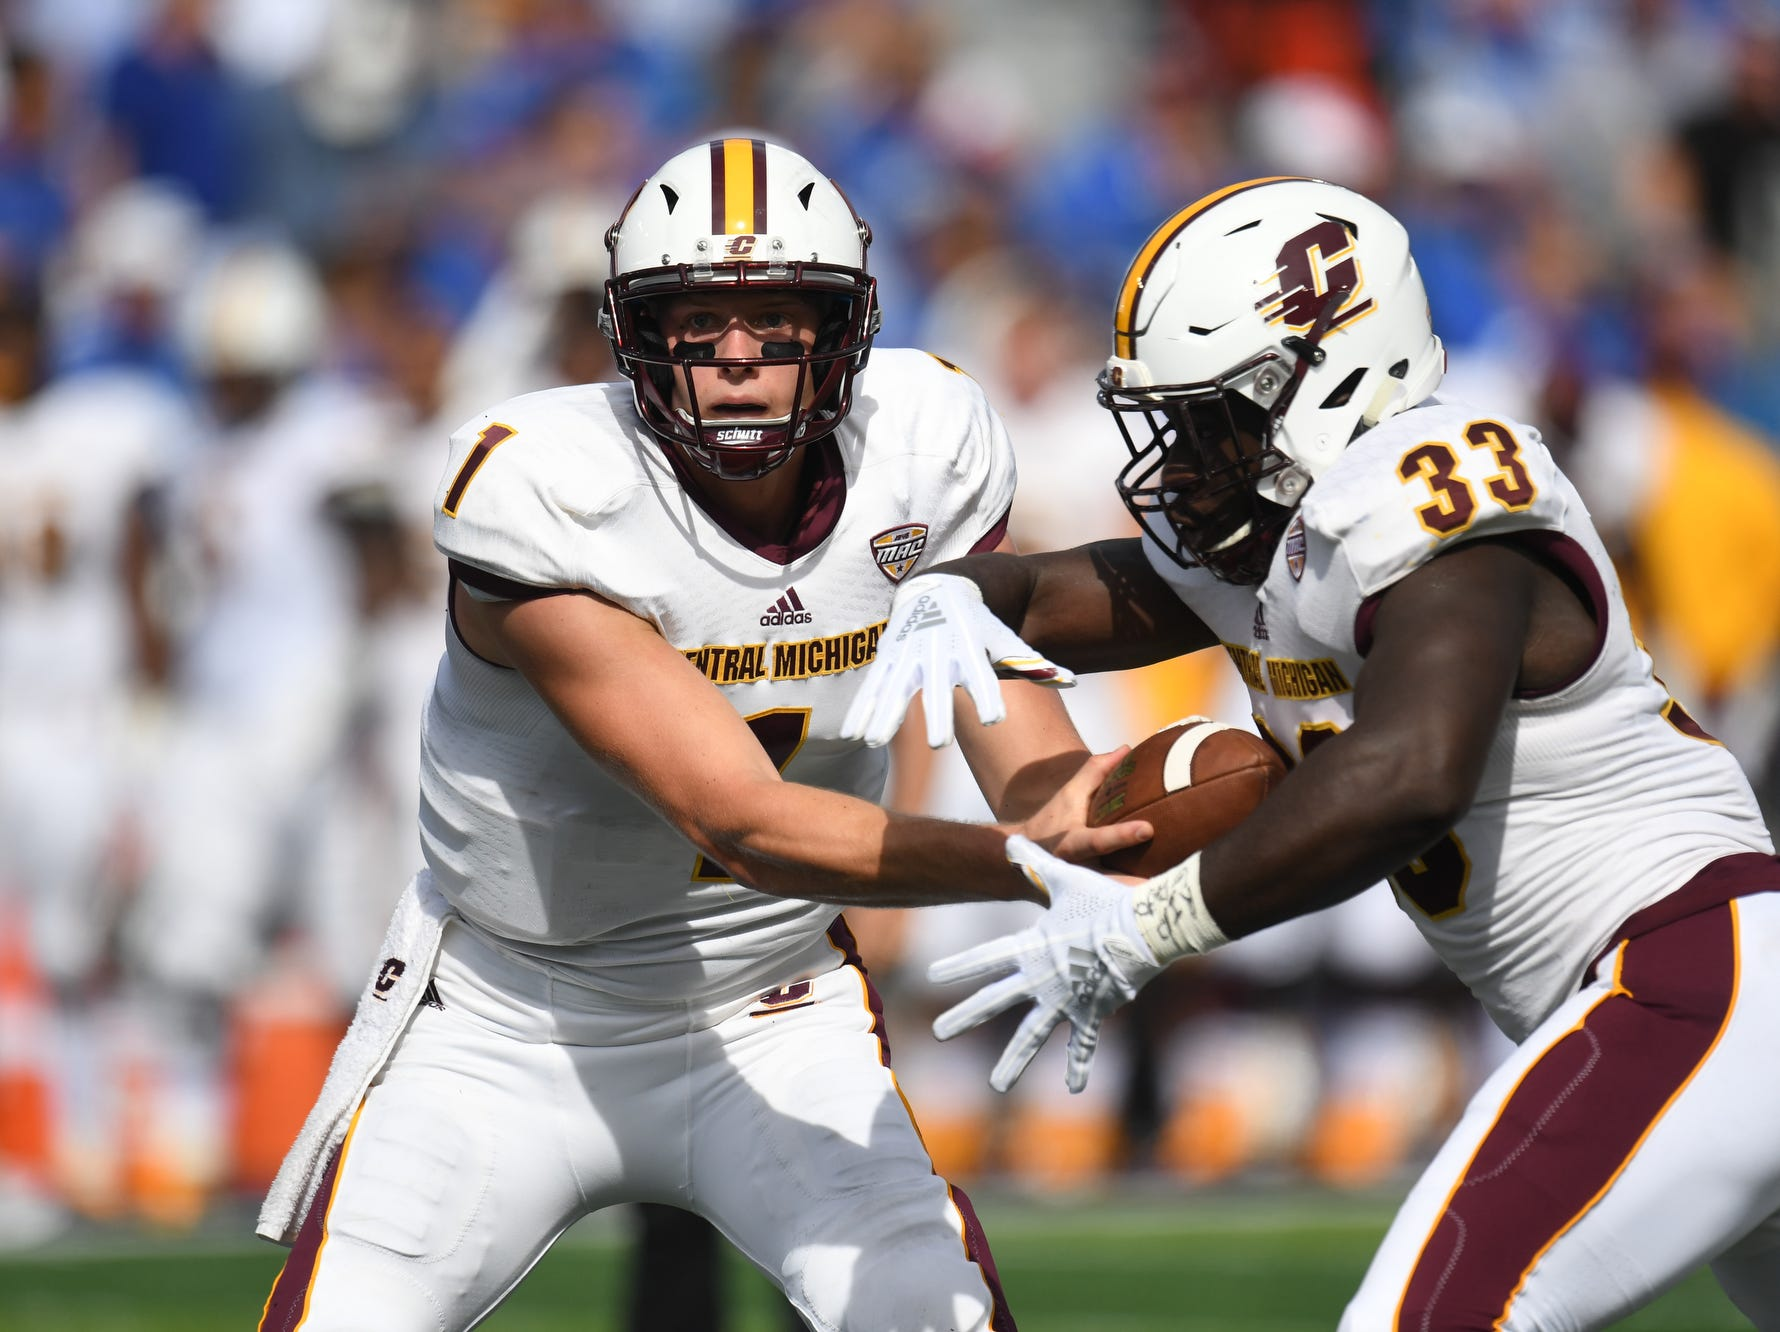 Central Michigan QB Tony Polijan hands off the ball to RB Kumehnnu Gwilly during the University of Kentucky football game against Central Michigan at Kroger Field in Lexington, Kentucky on Saturday, September 1, 2018.